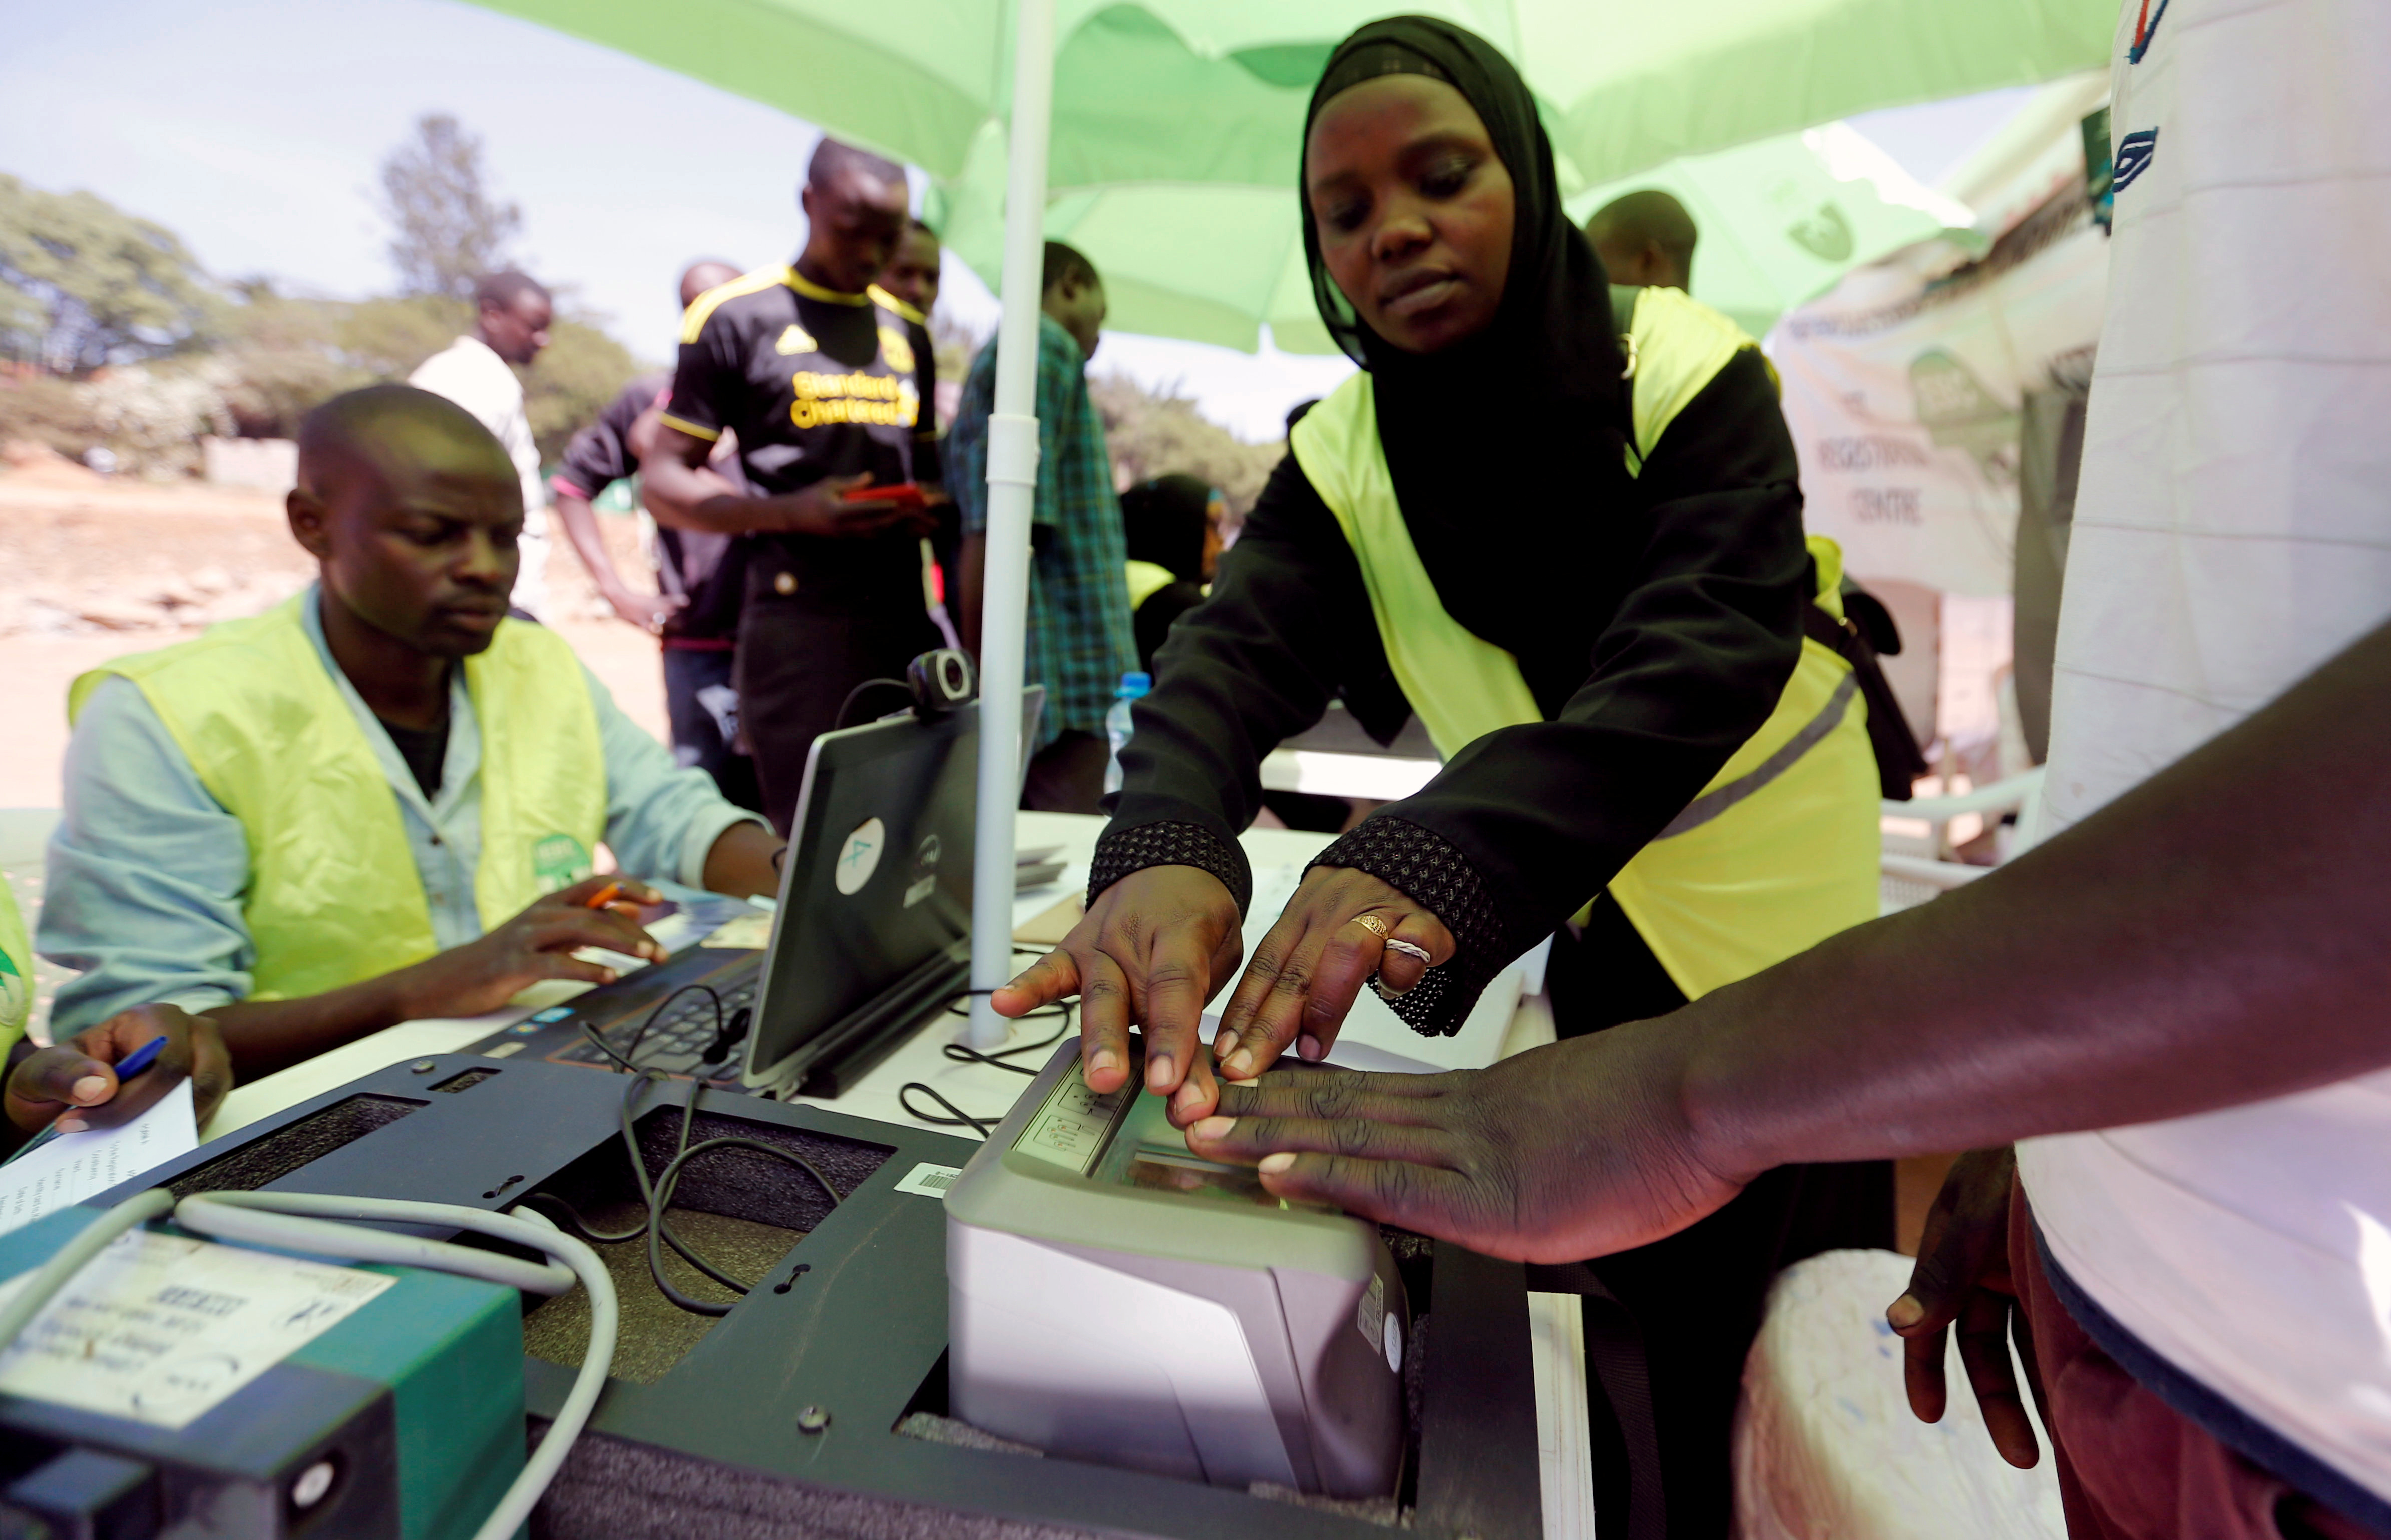 Officials from the Independent Electoral and Boundaries Commission (IEBC) records finger prints of a man as they collect data from the electorate during the launch of the 2017 general elections voter registration exercise within Kibera slums in Kenya's capital Nairobi, January 16, 2017.